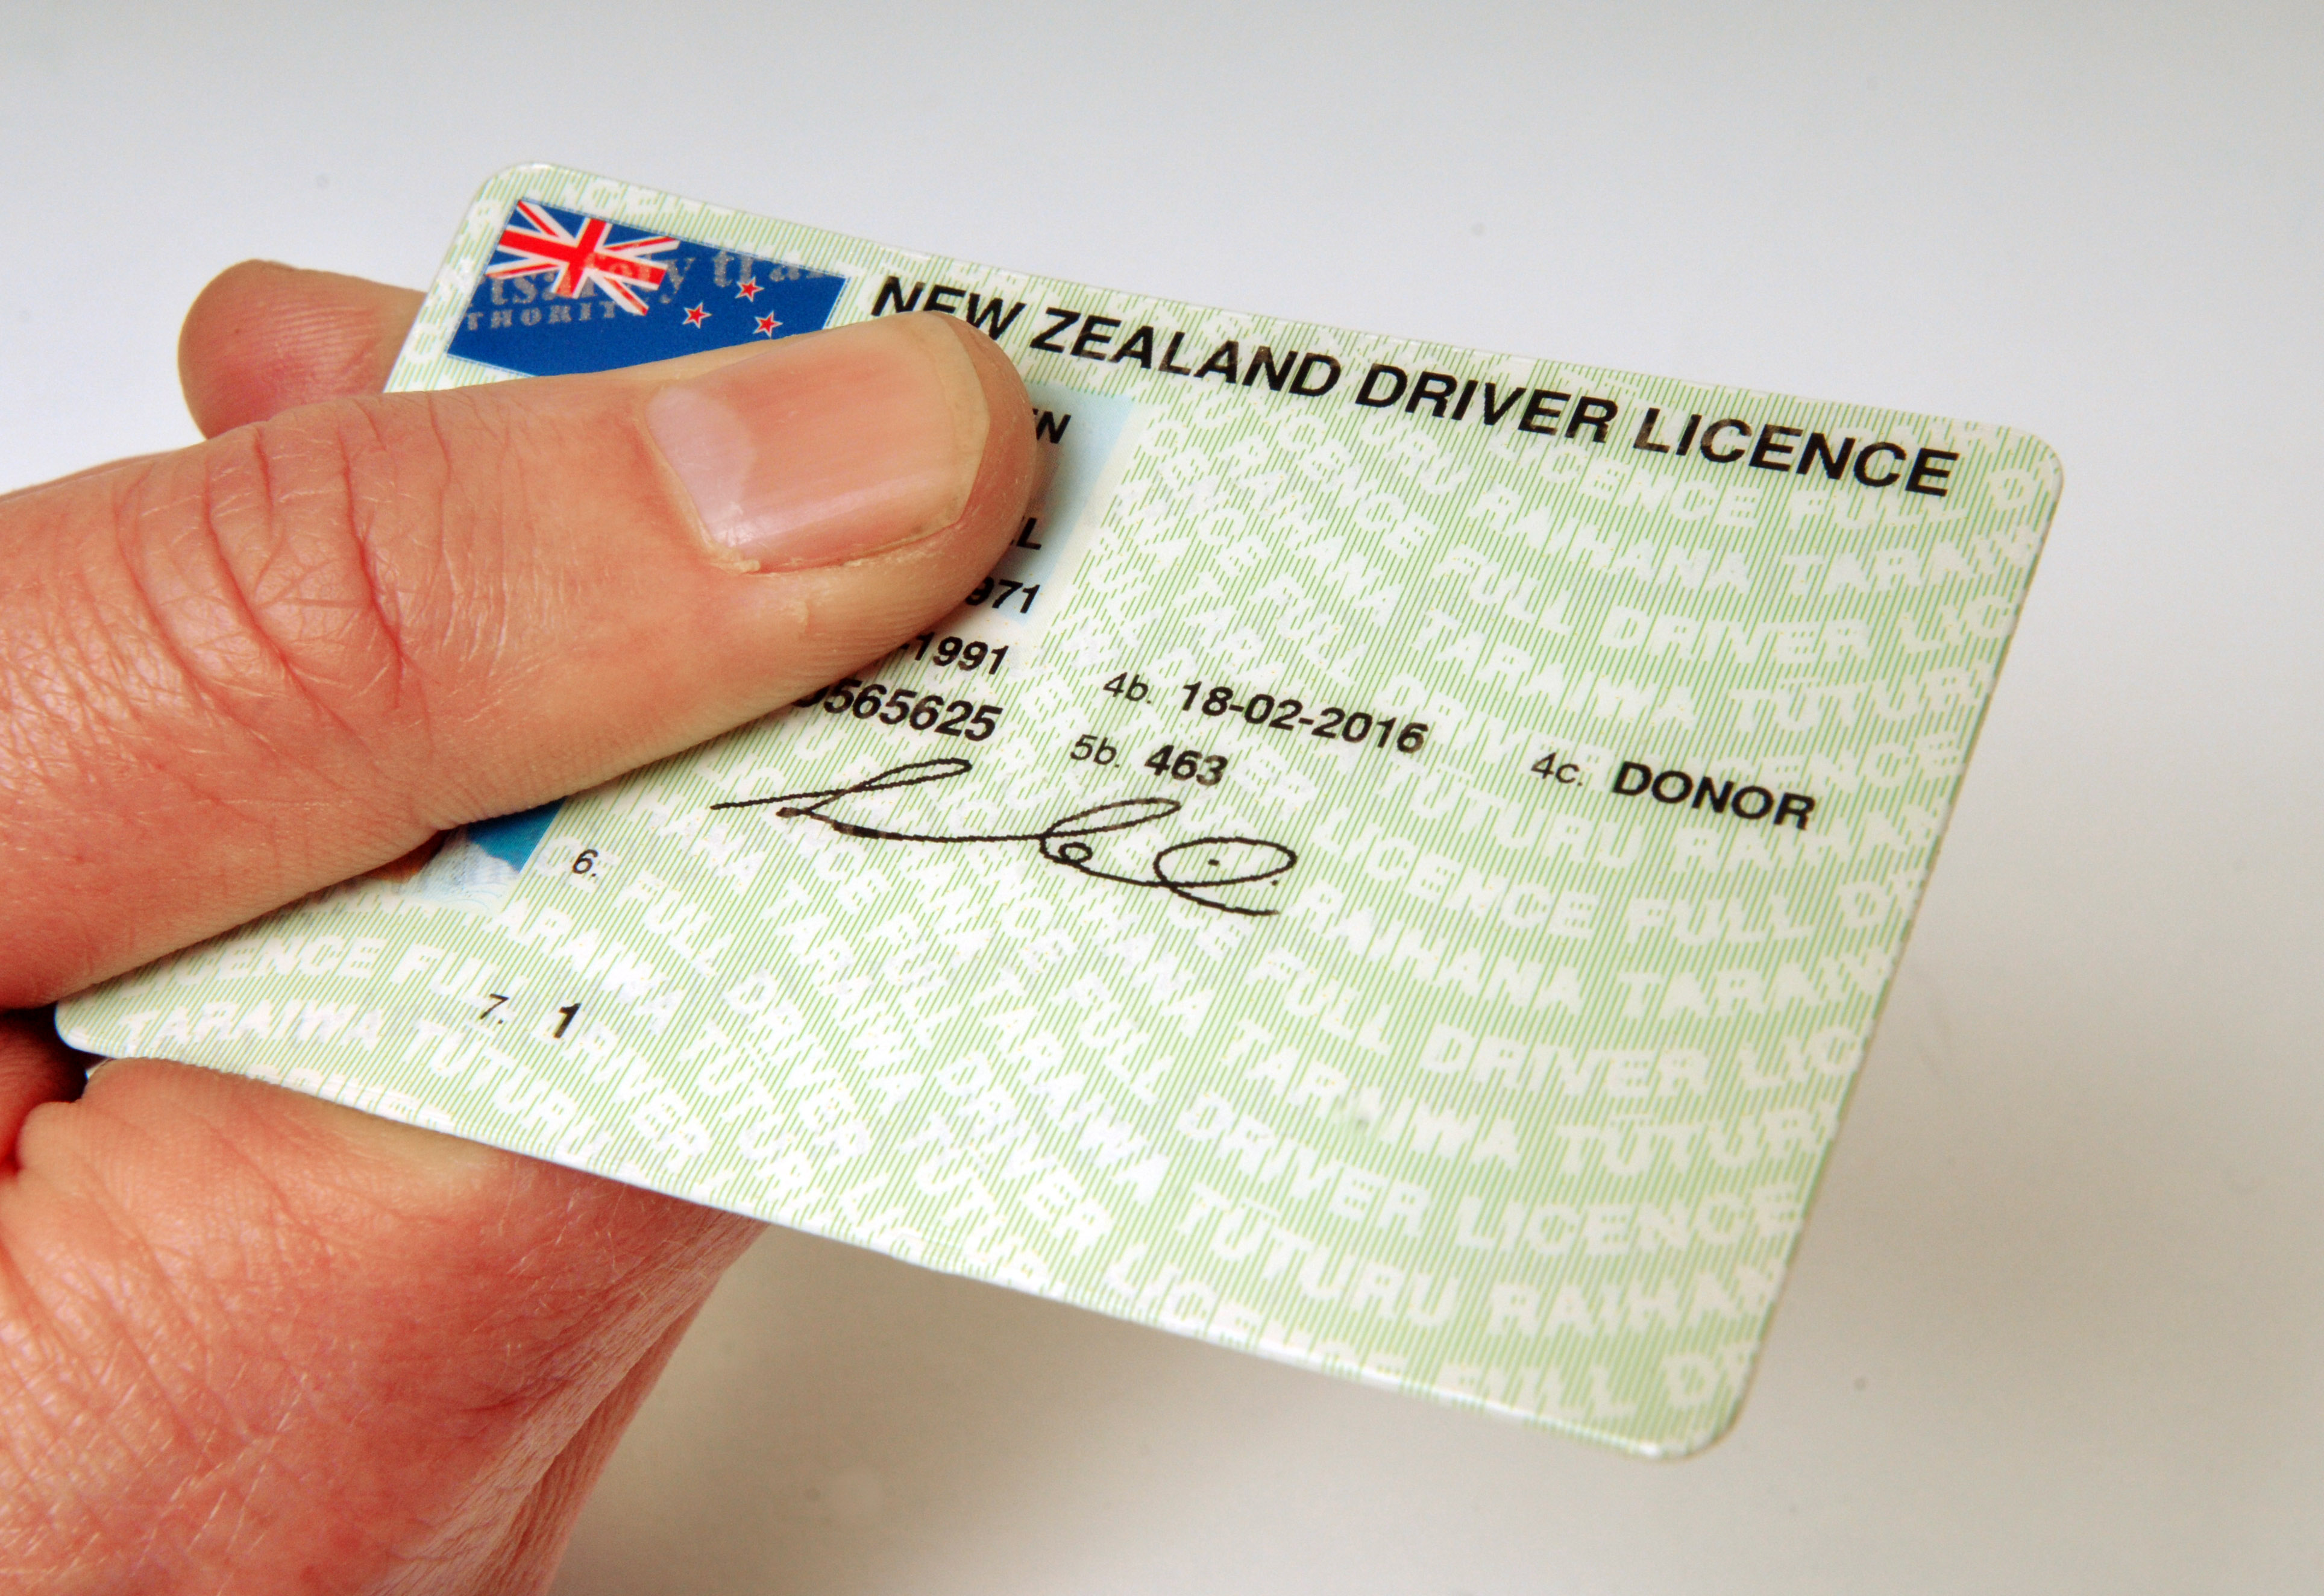 Driver licence scandal: hundreds of licences chucked out